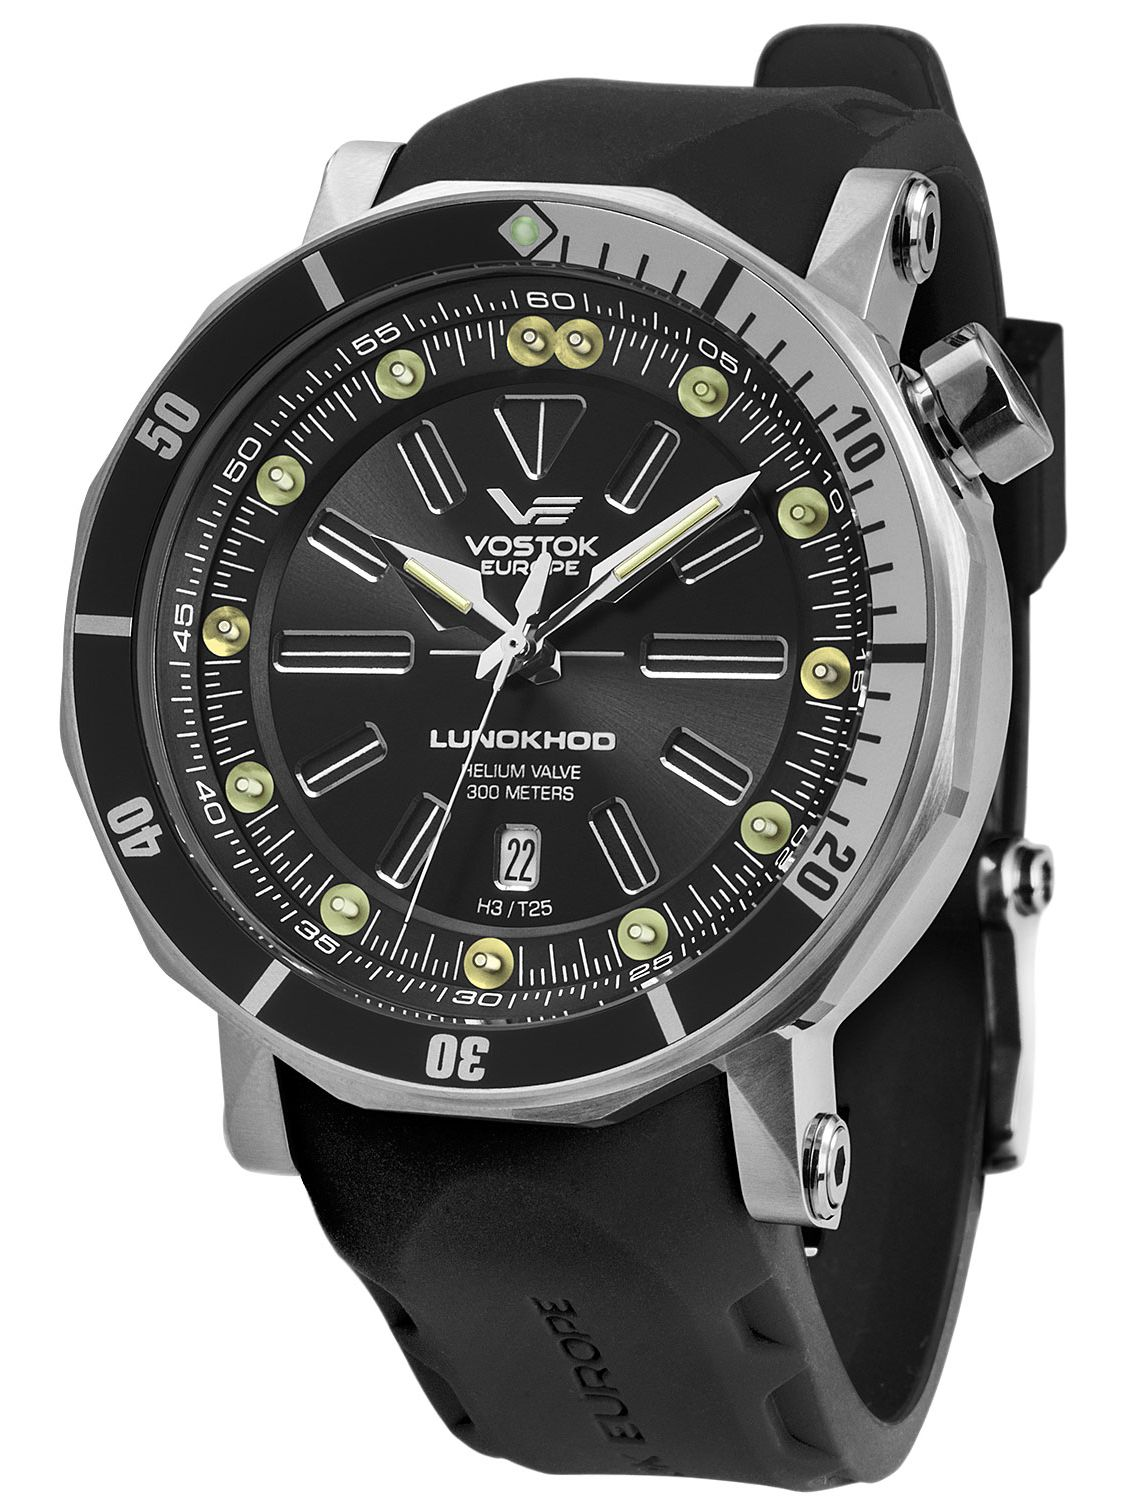 Vostok europe lunokhod 2 automatic mens watch 6205210 for Vostok europe watches